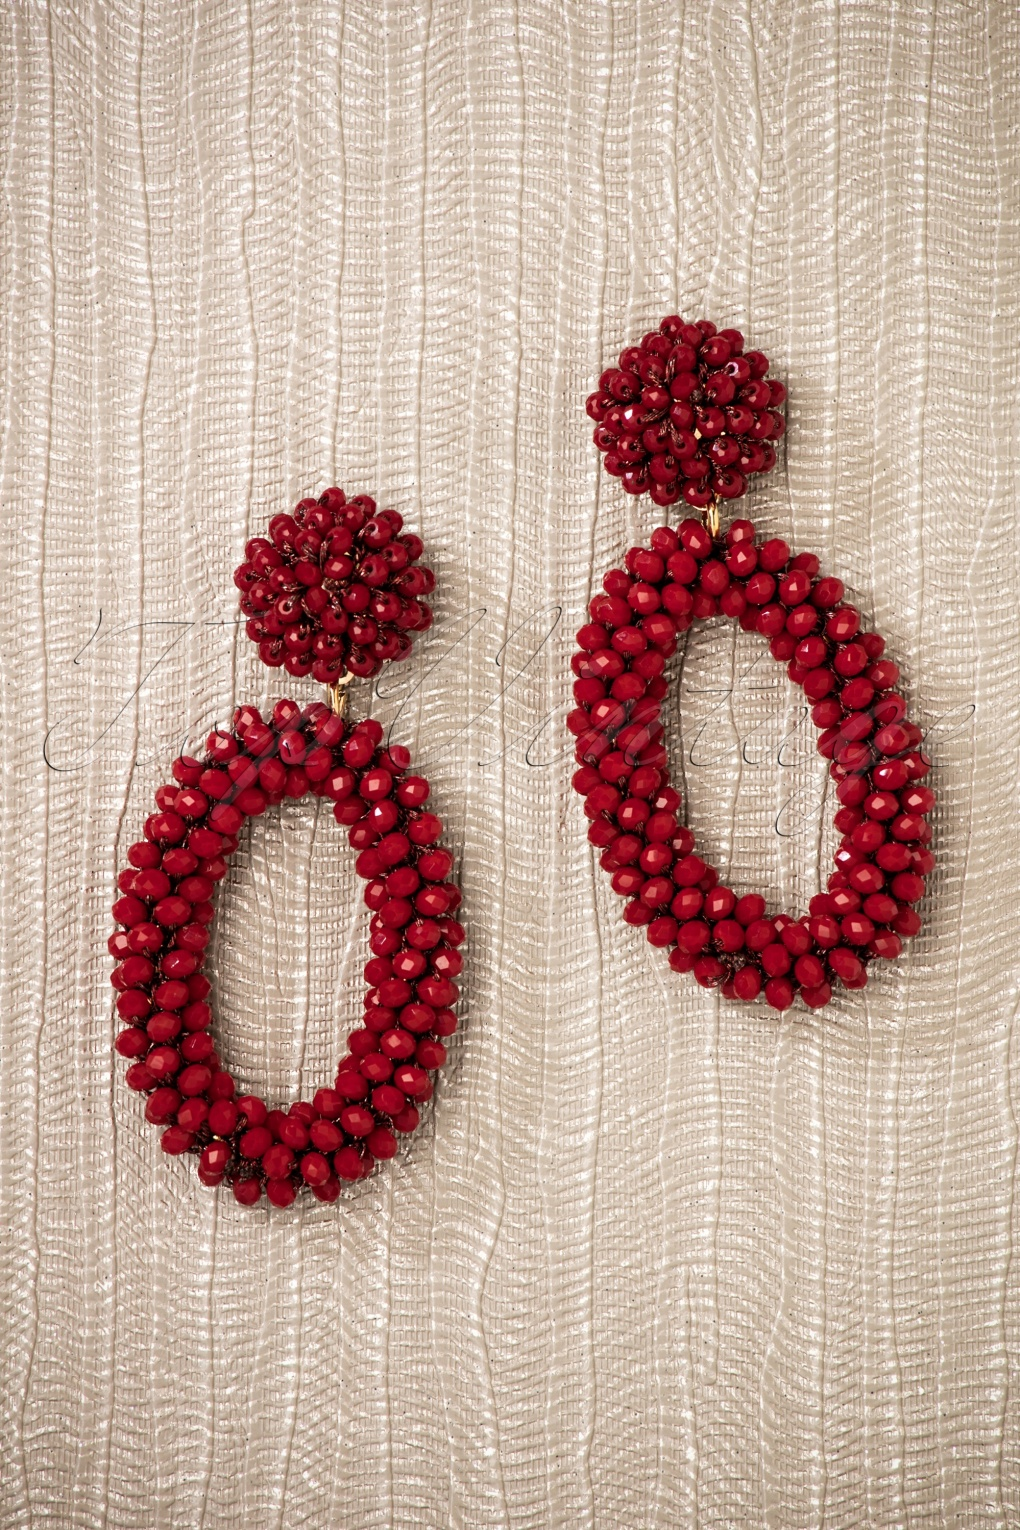 1960s Style Dresses, Clothing, Shoes UK 60s Mia Beaded Earrings in Dark Red £10.47 AT vintagedancer.com